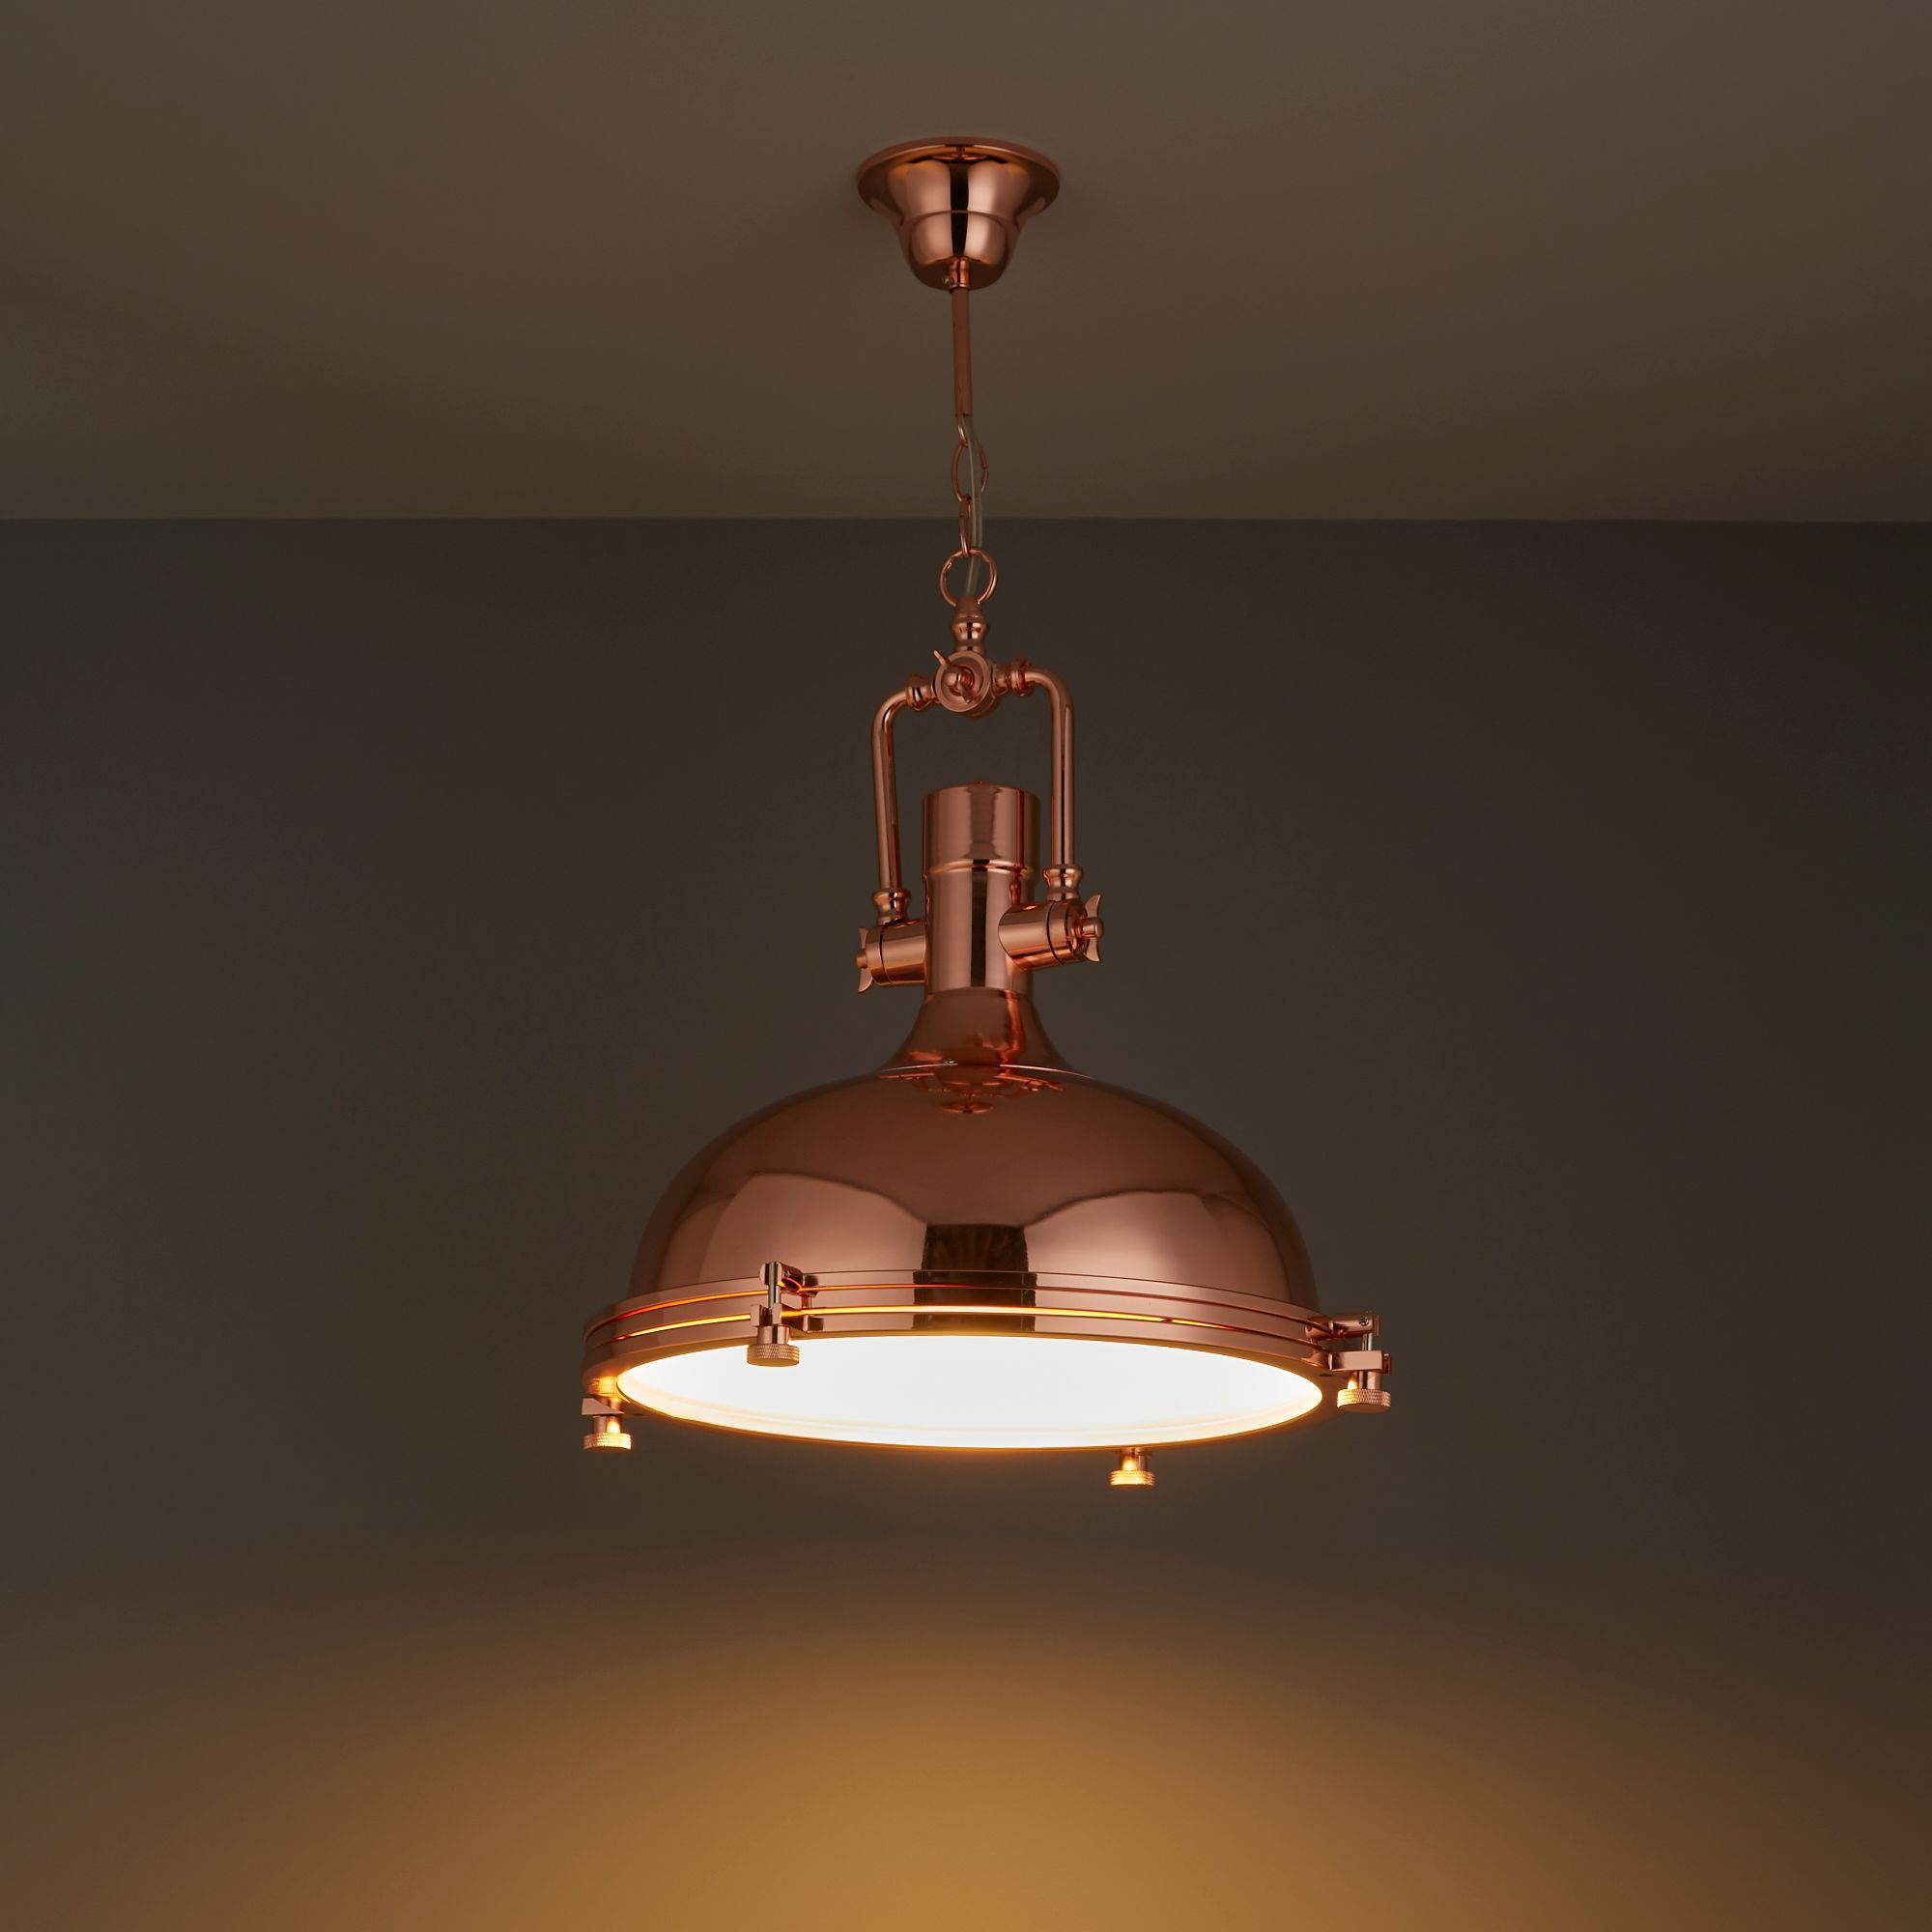 Charly Industrial Copper Effect Ceiling Light